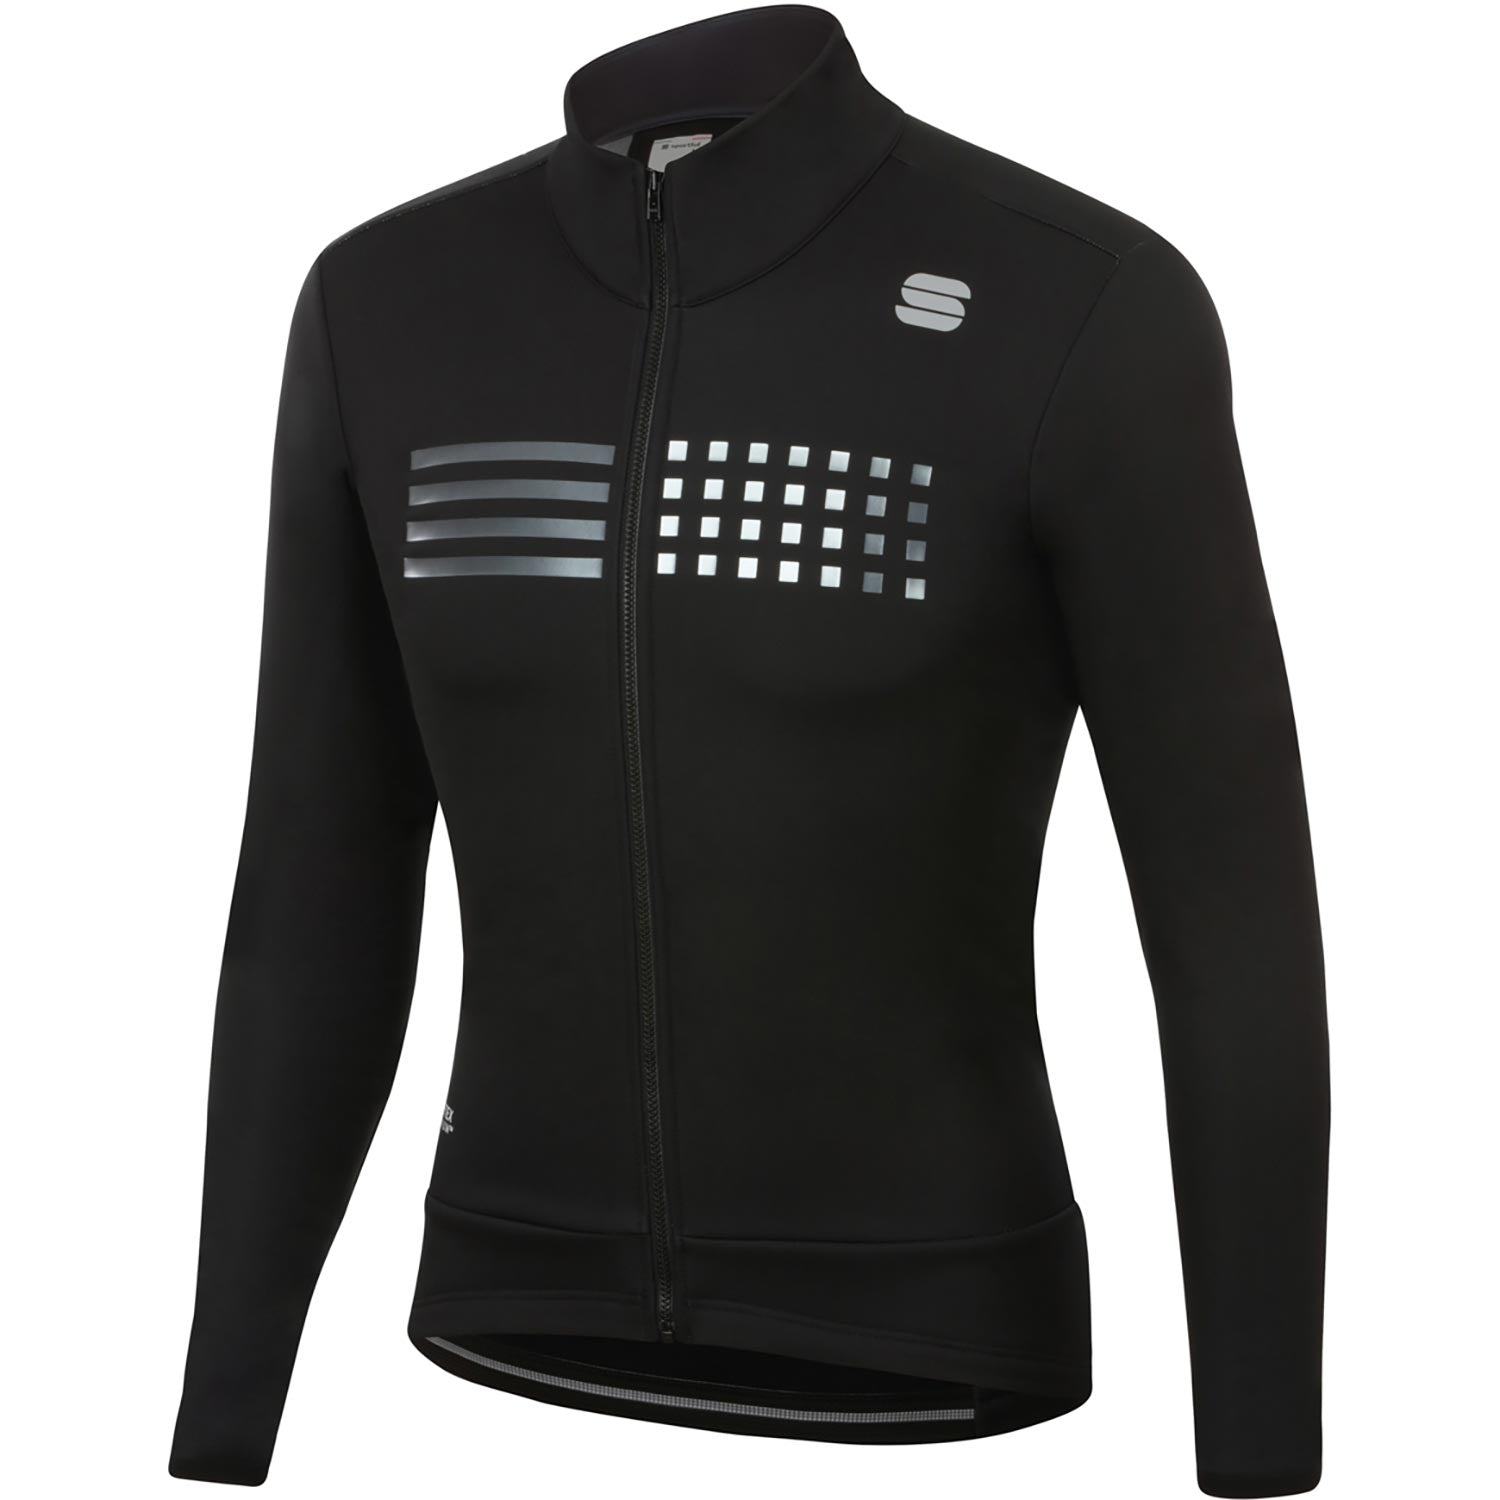 Sportful-Sportful Tempo Jacket-Black-S-SF205120022-saddleback-elite-performance-cycling